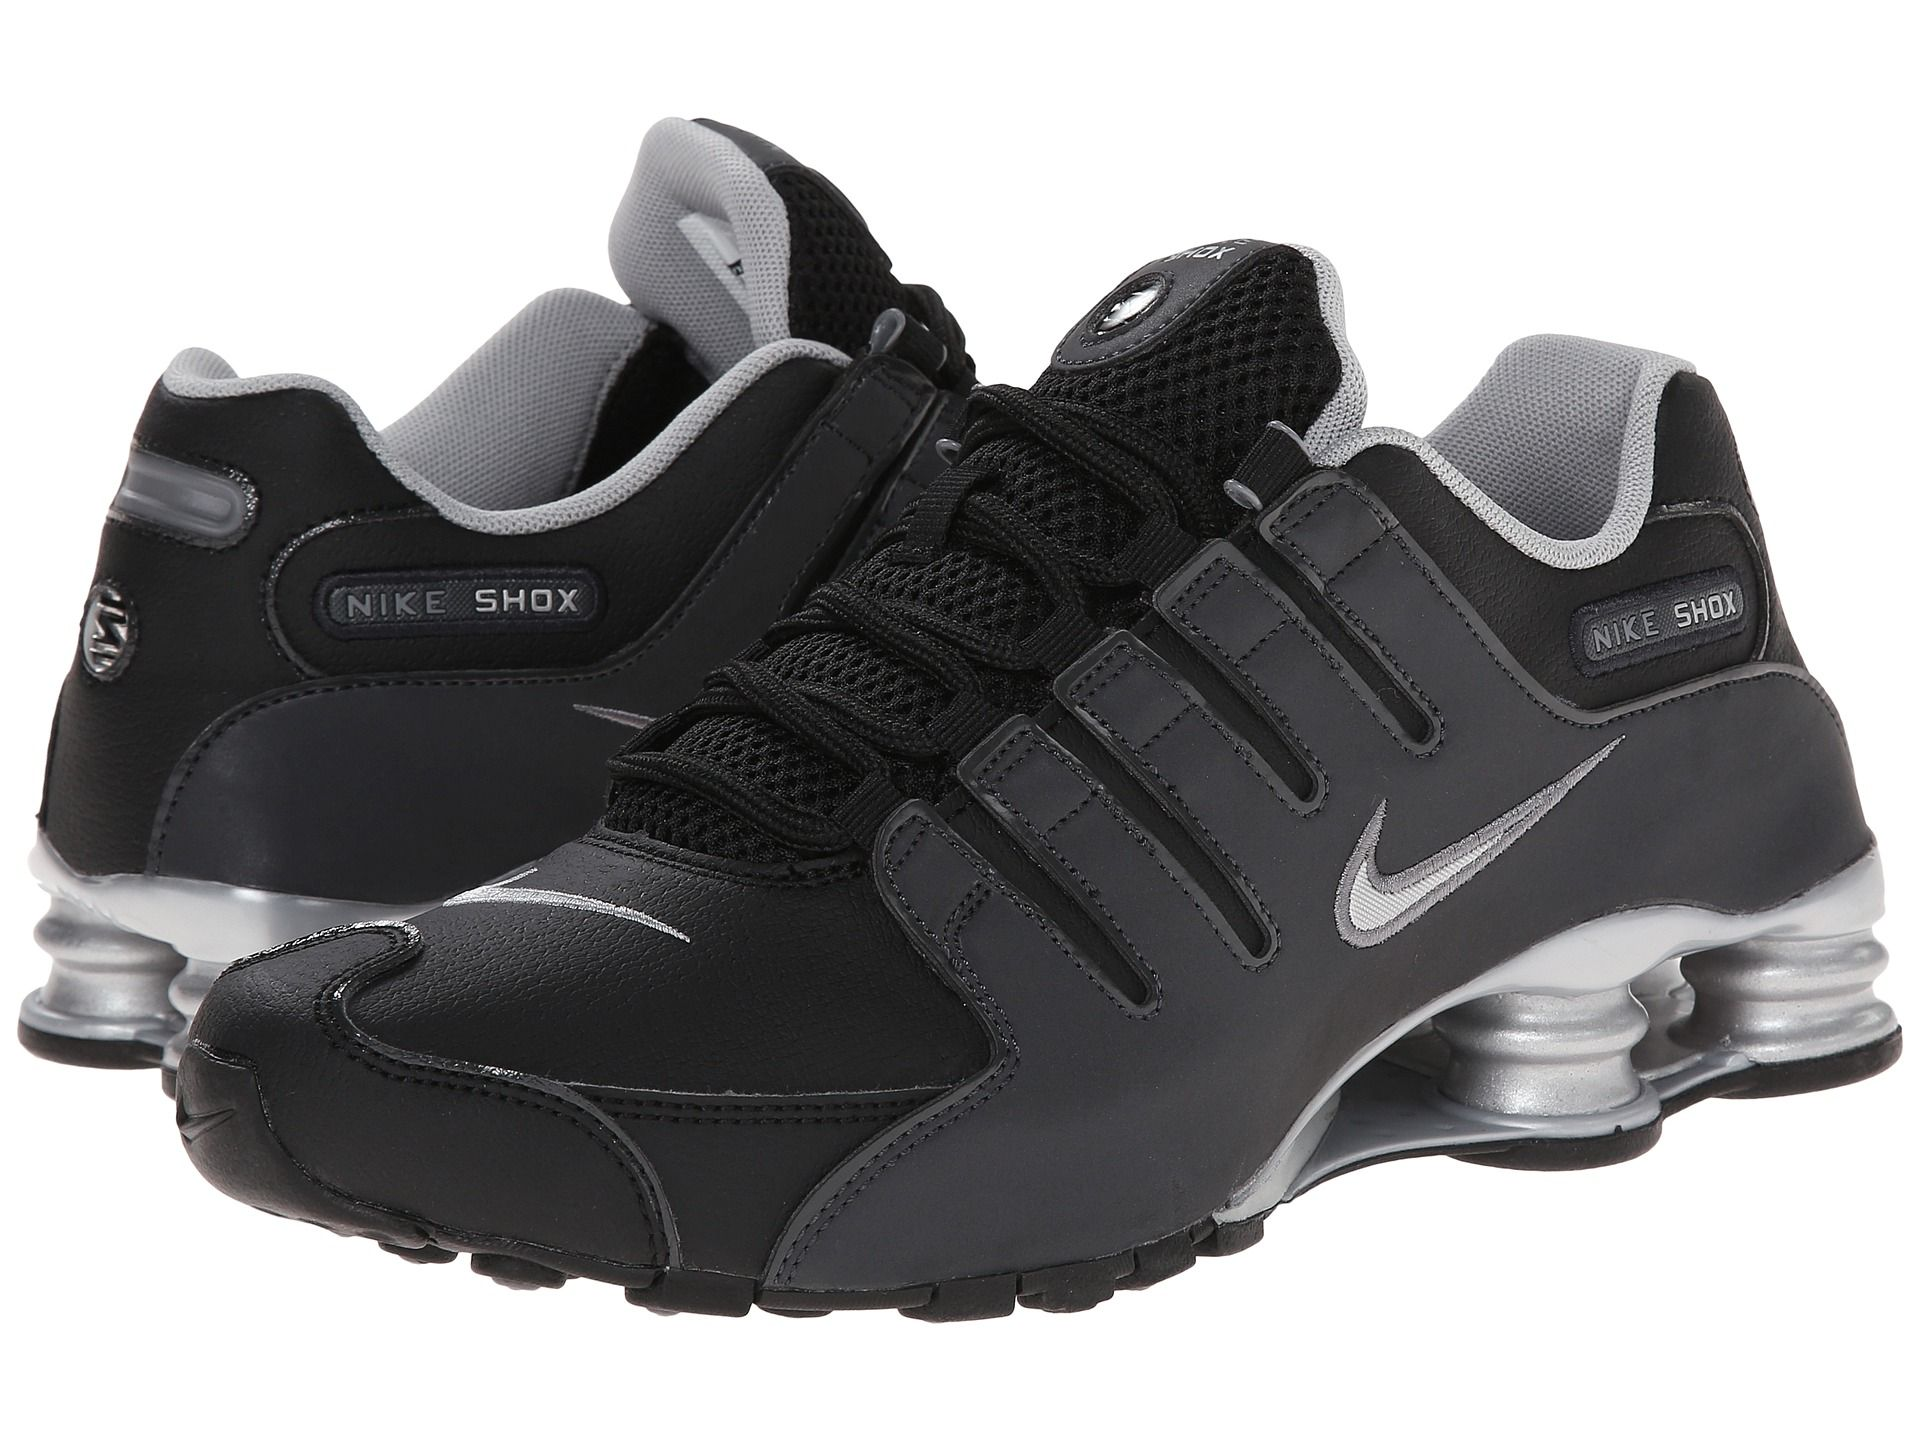 Pin by Dizen Gear on Footgear | Nike shox nz, Nike shox, Nike